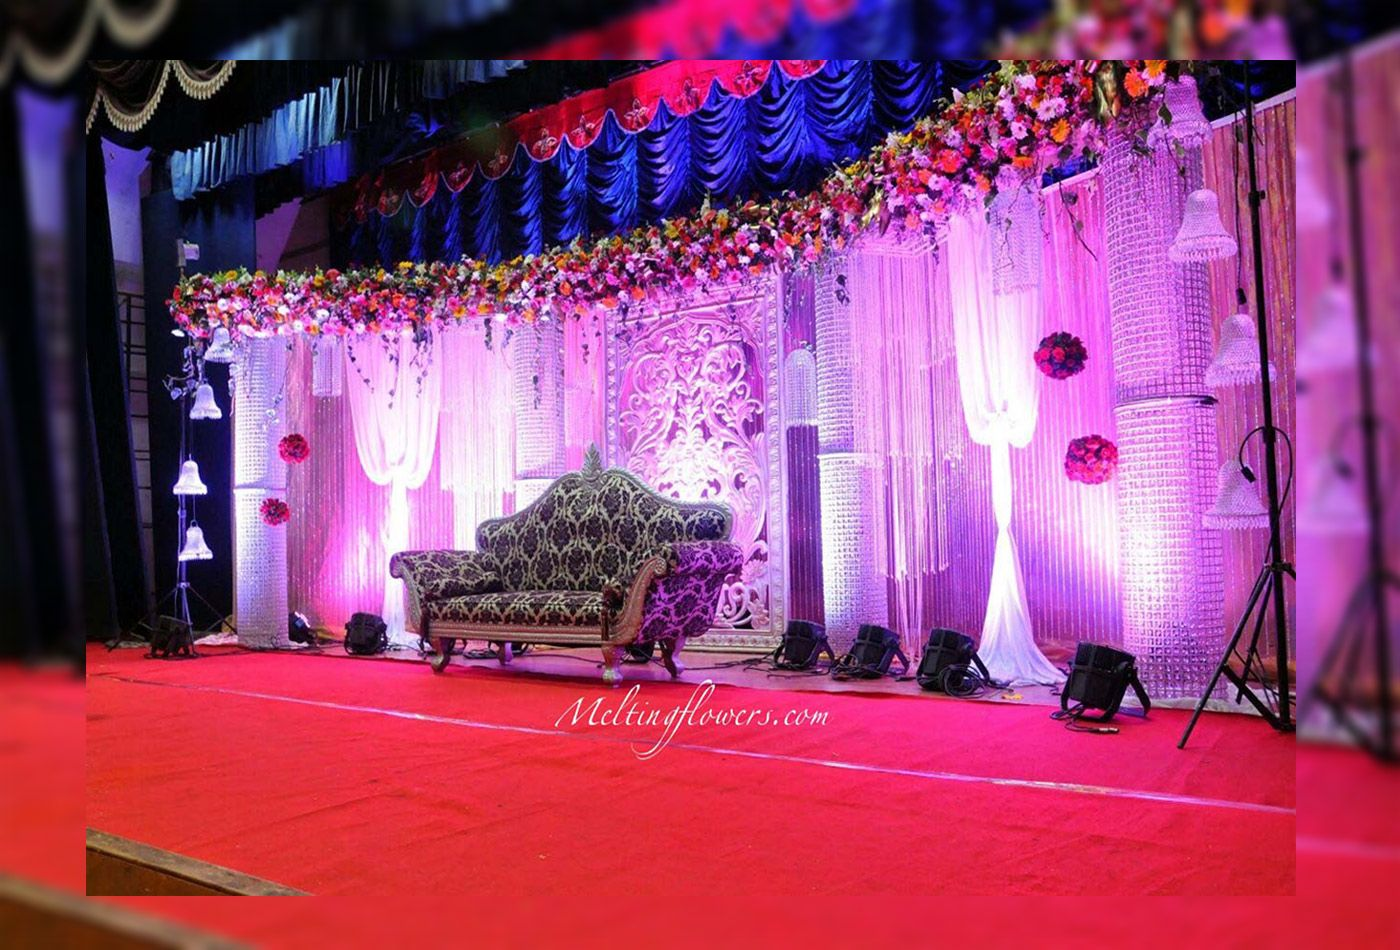 Wedding stage decoration images in hd  Evergreen Best Reception Stage Decoration In Theme Of Purple